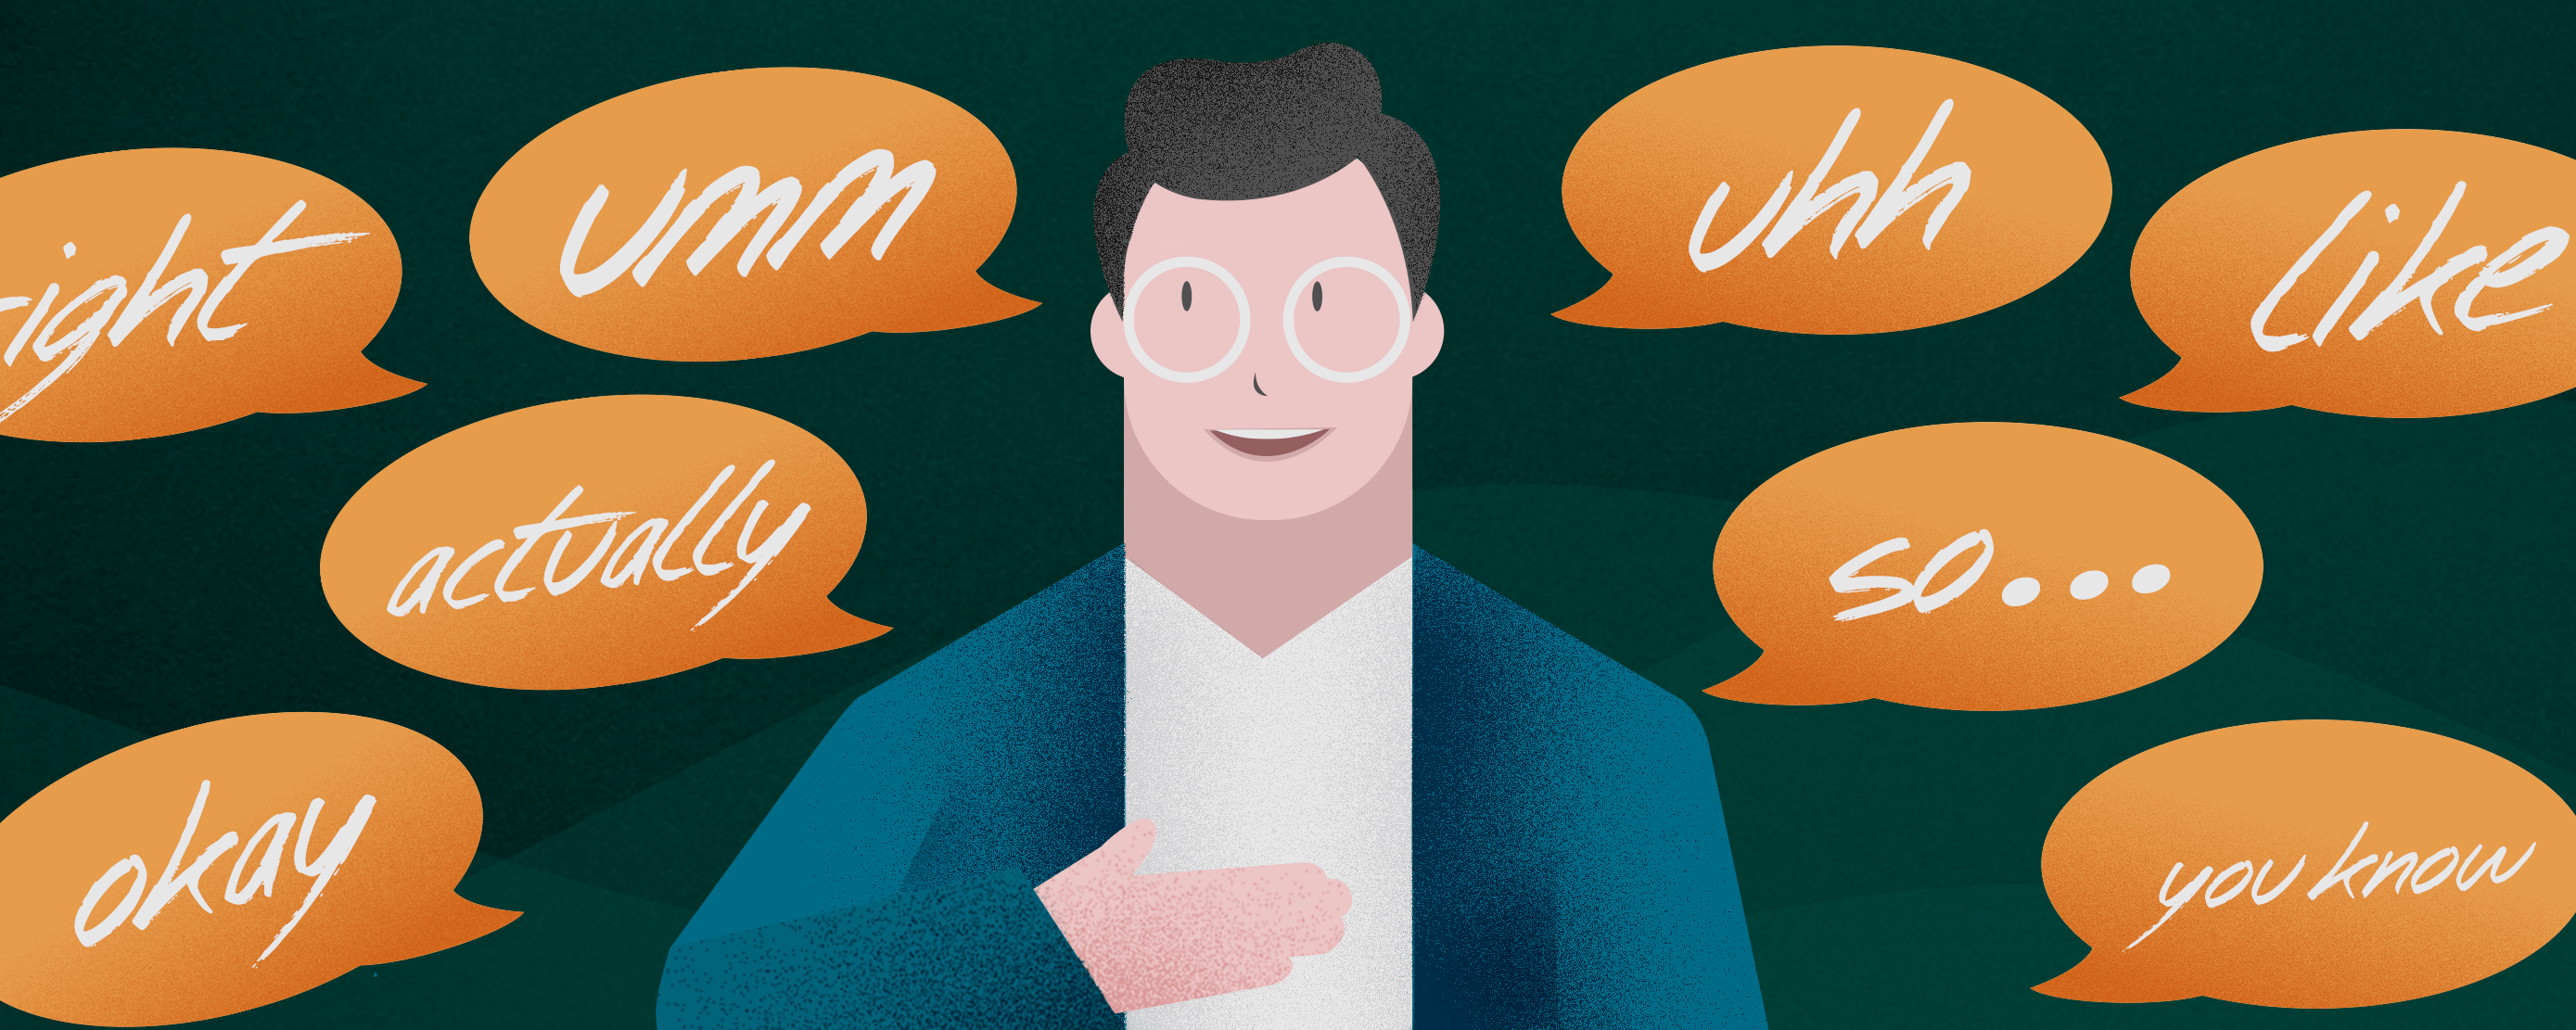 Why You Should Absolutely Avoid Using Filler Words